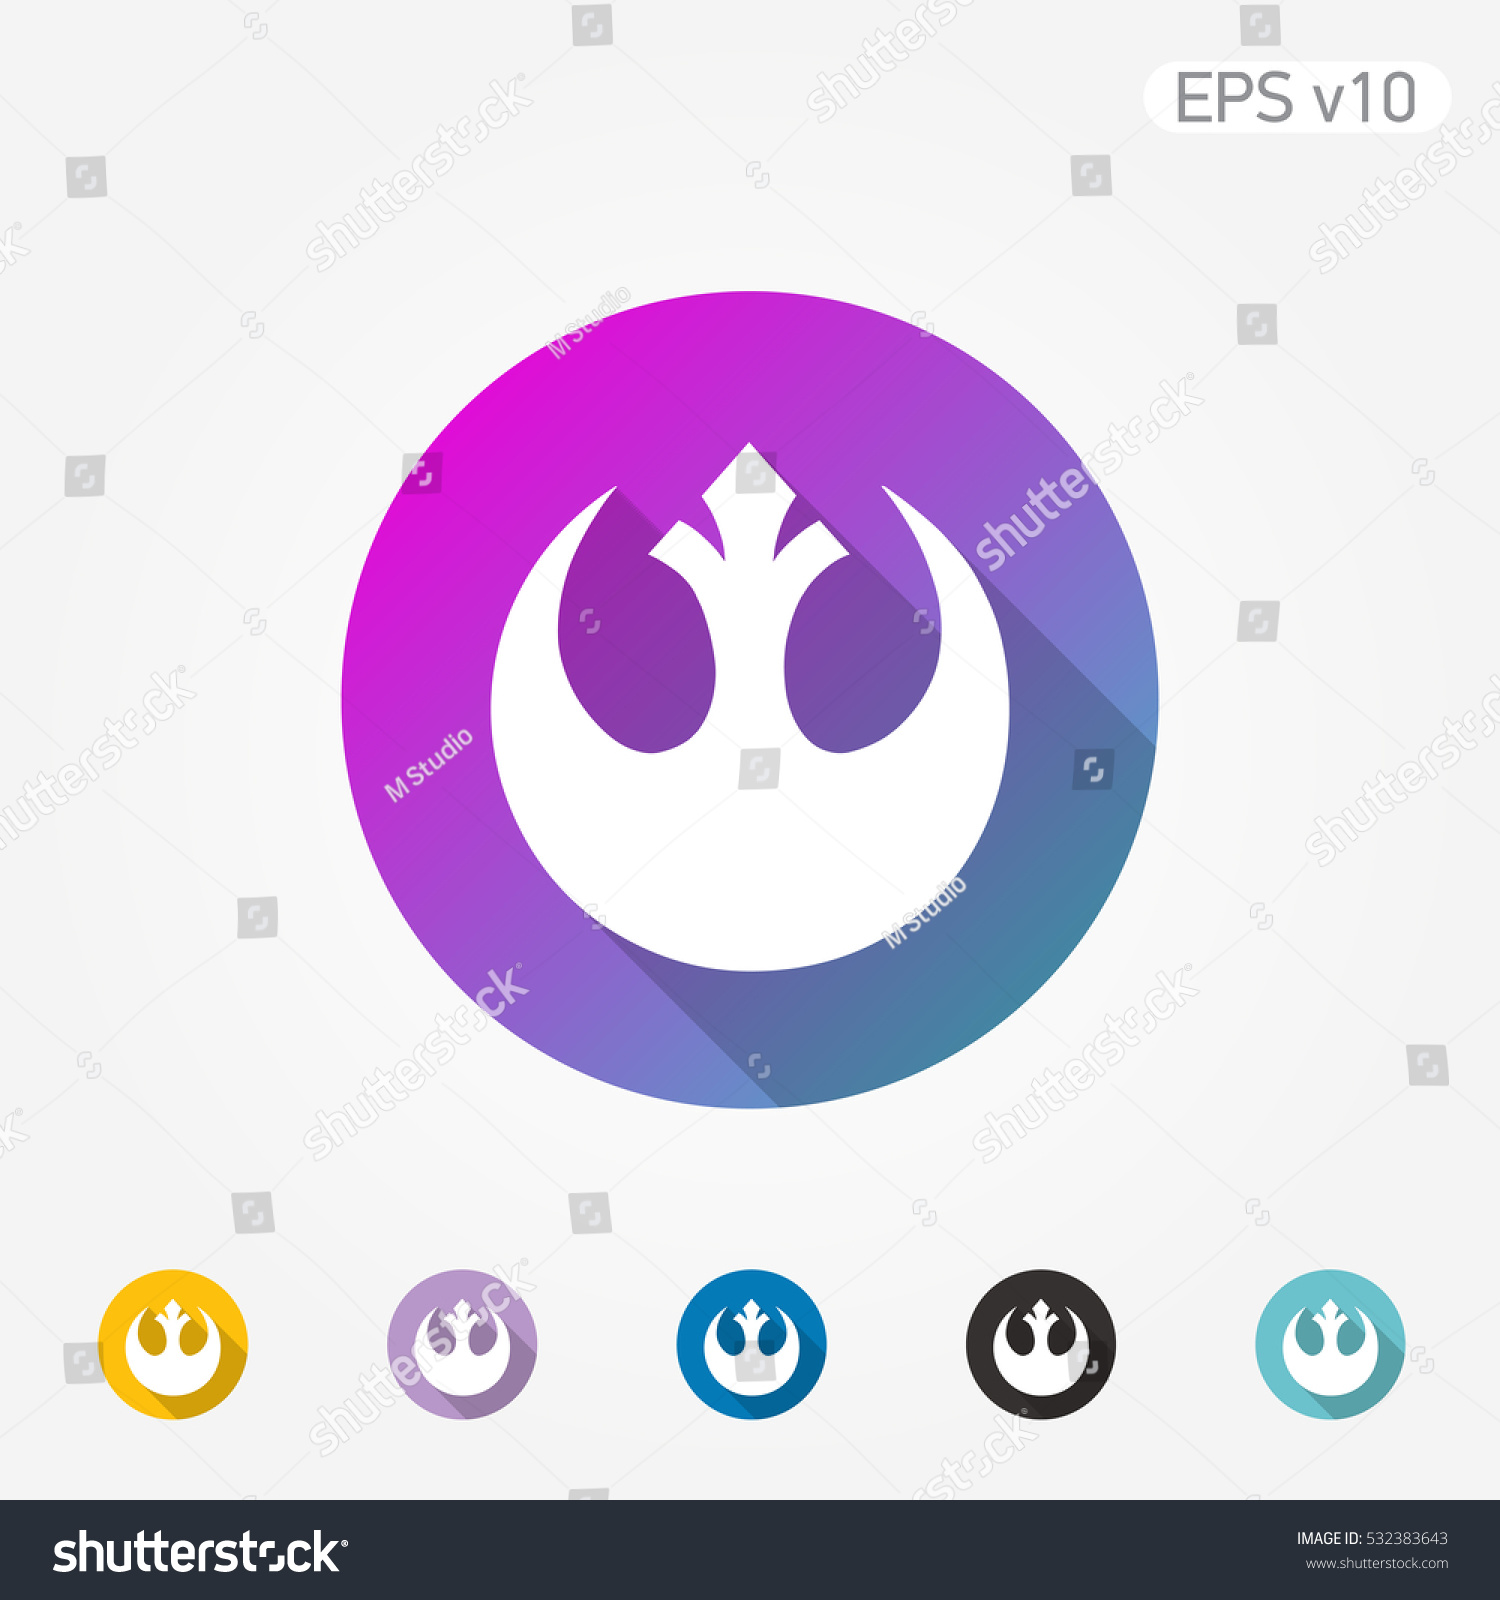 Colored icon star wars symbol shadow stock vector 532383643 colored icon of star wars symbol with shadow biocorpaavc Images